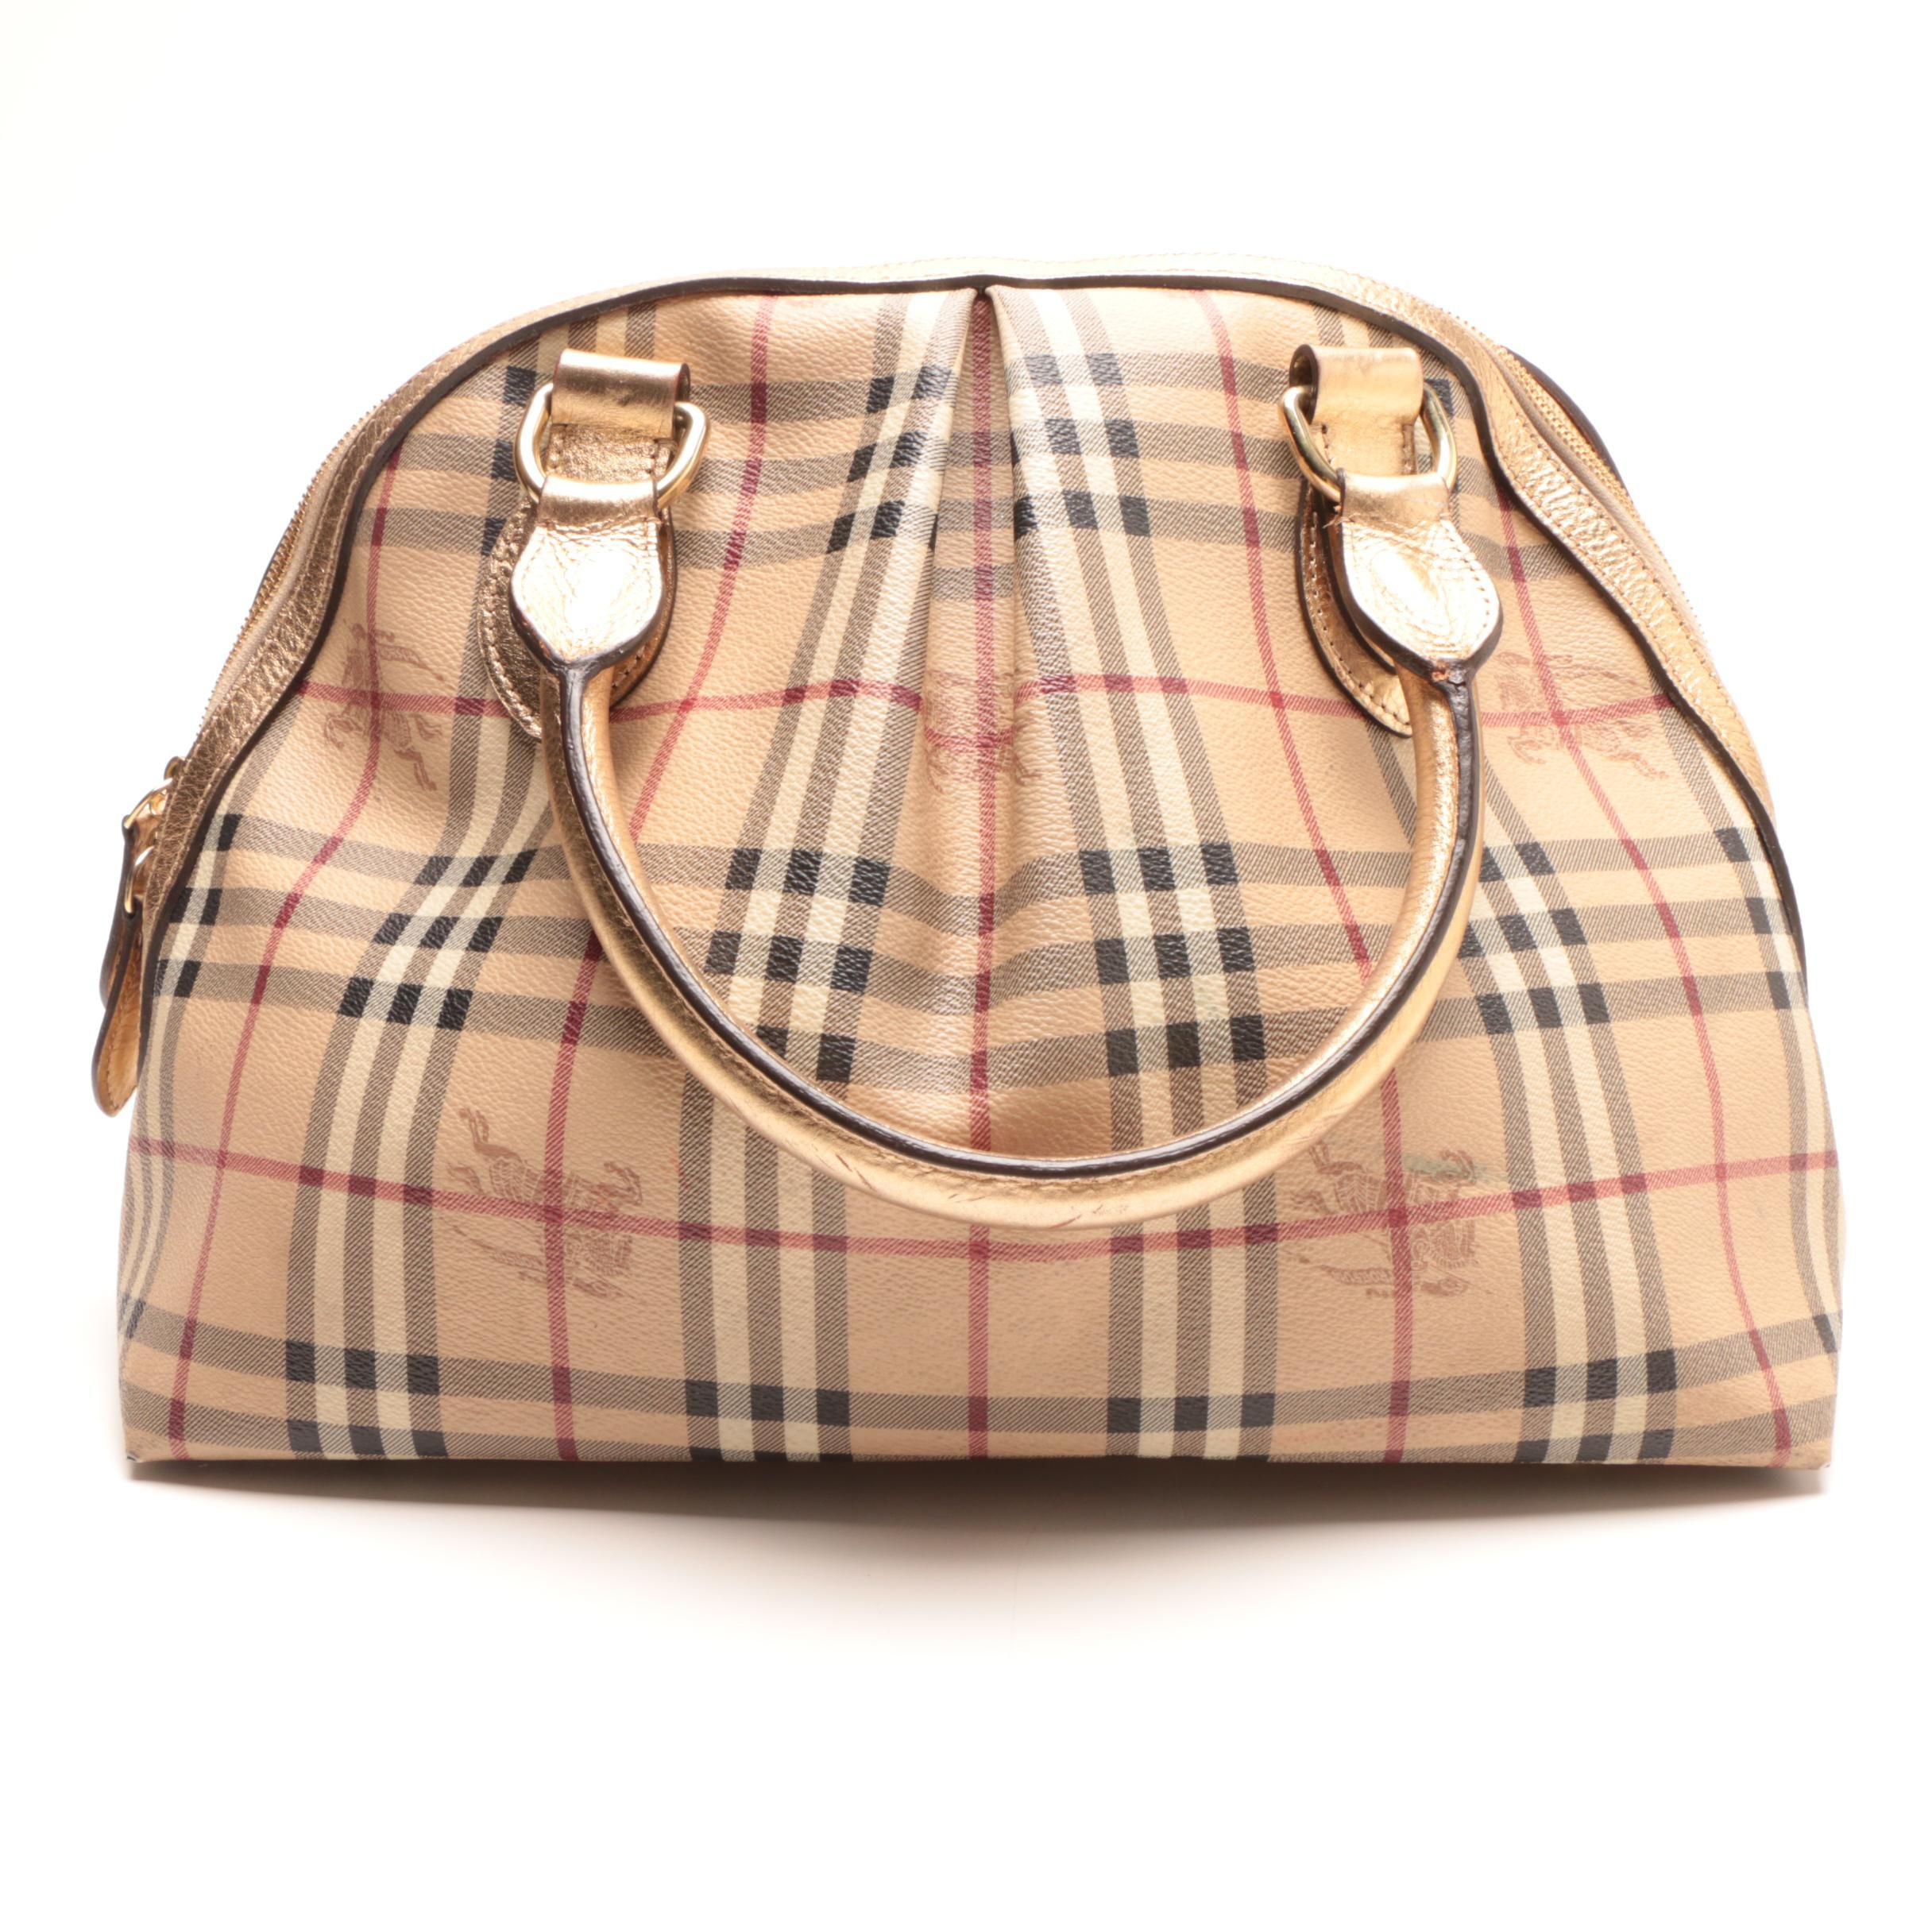 "Burberry ""Haymarket Check"" Thornley Domed Satchel"